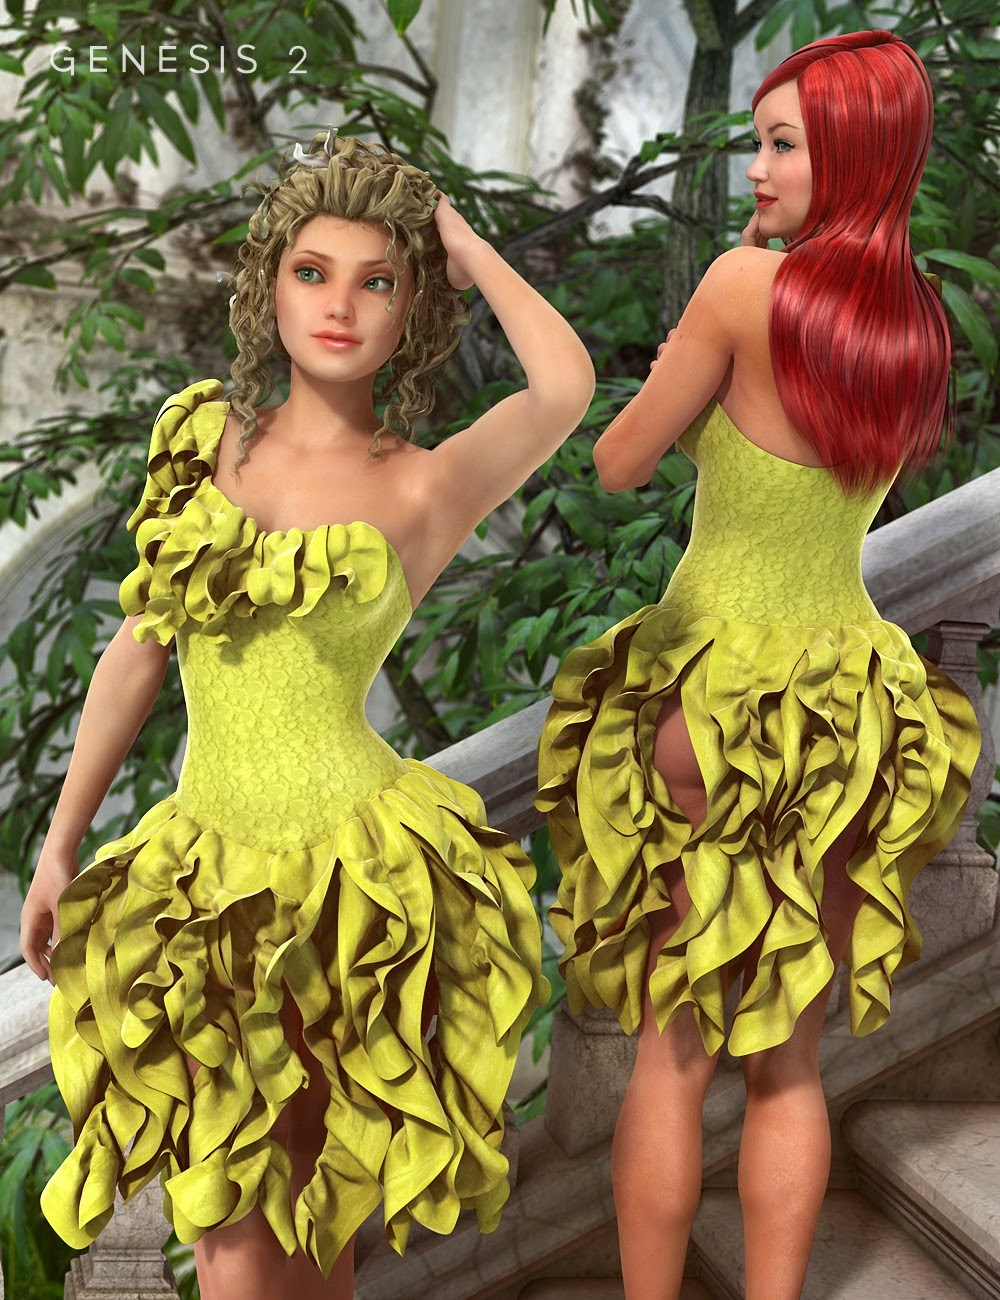 Robe Canaries pour Genesis 2 Femme